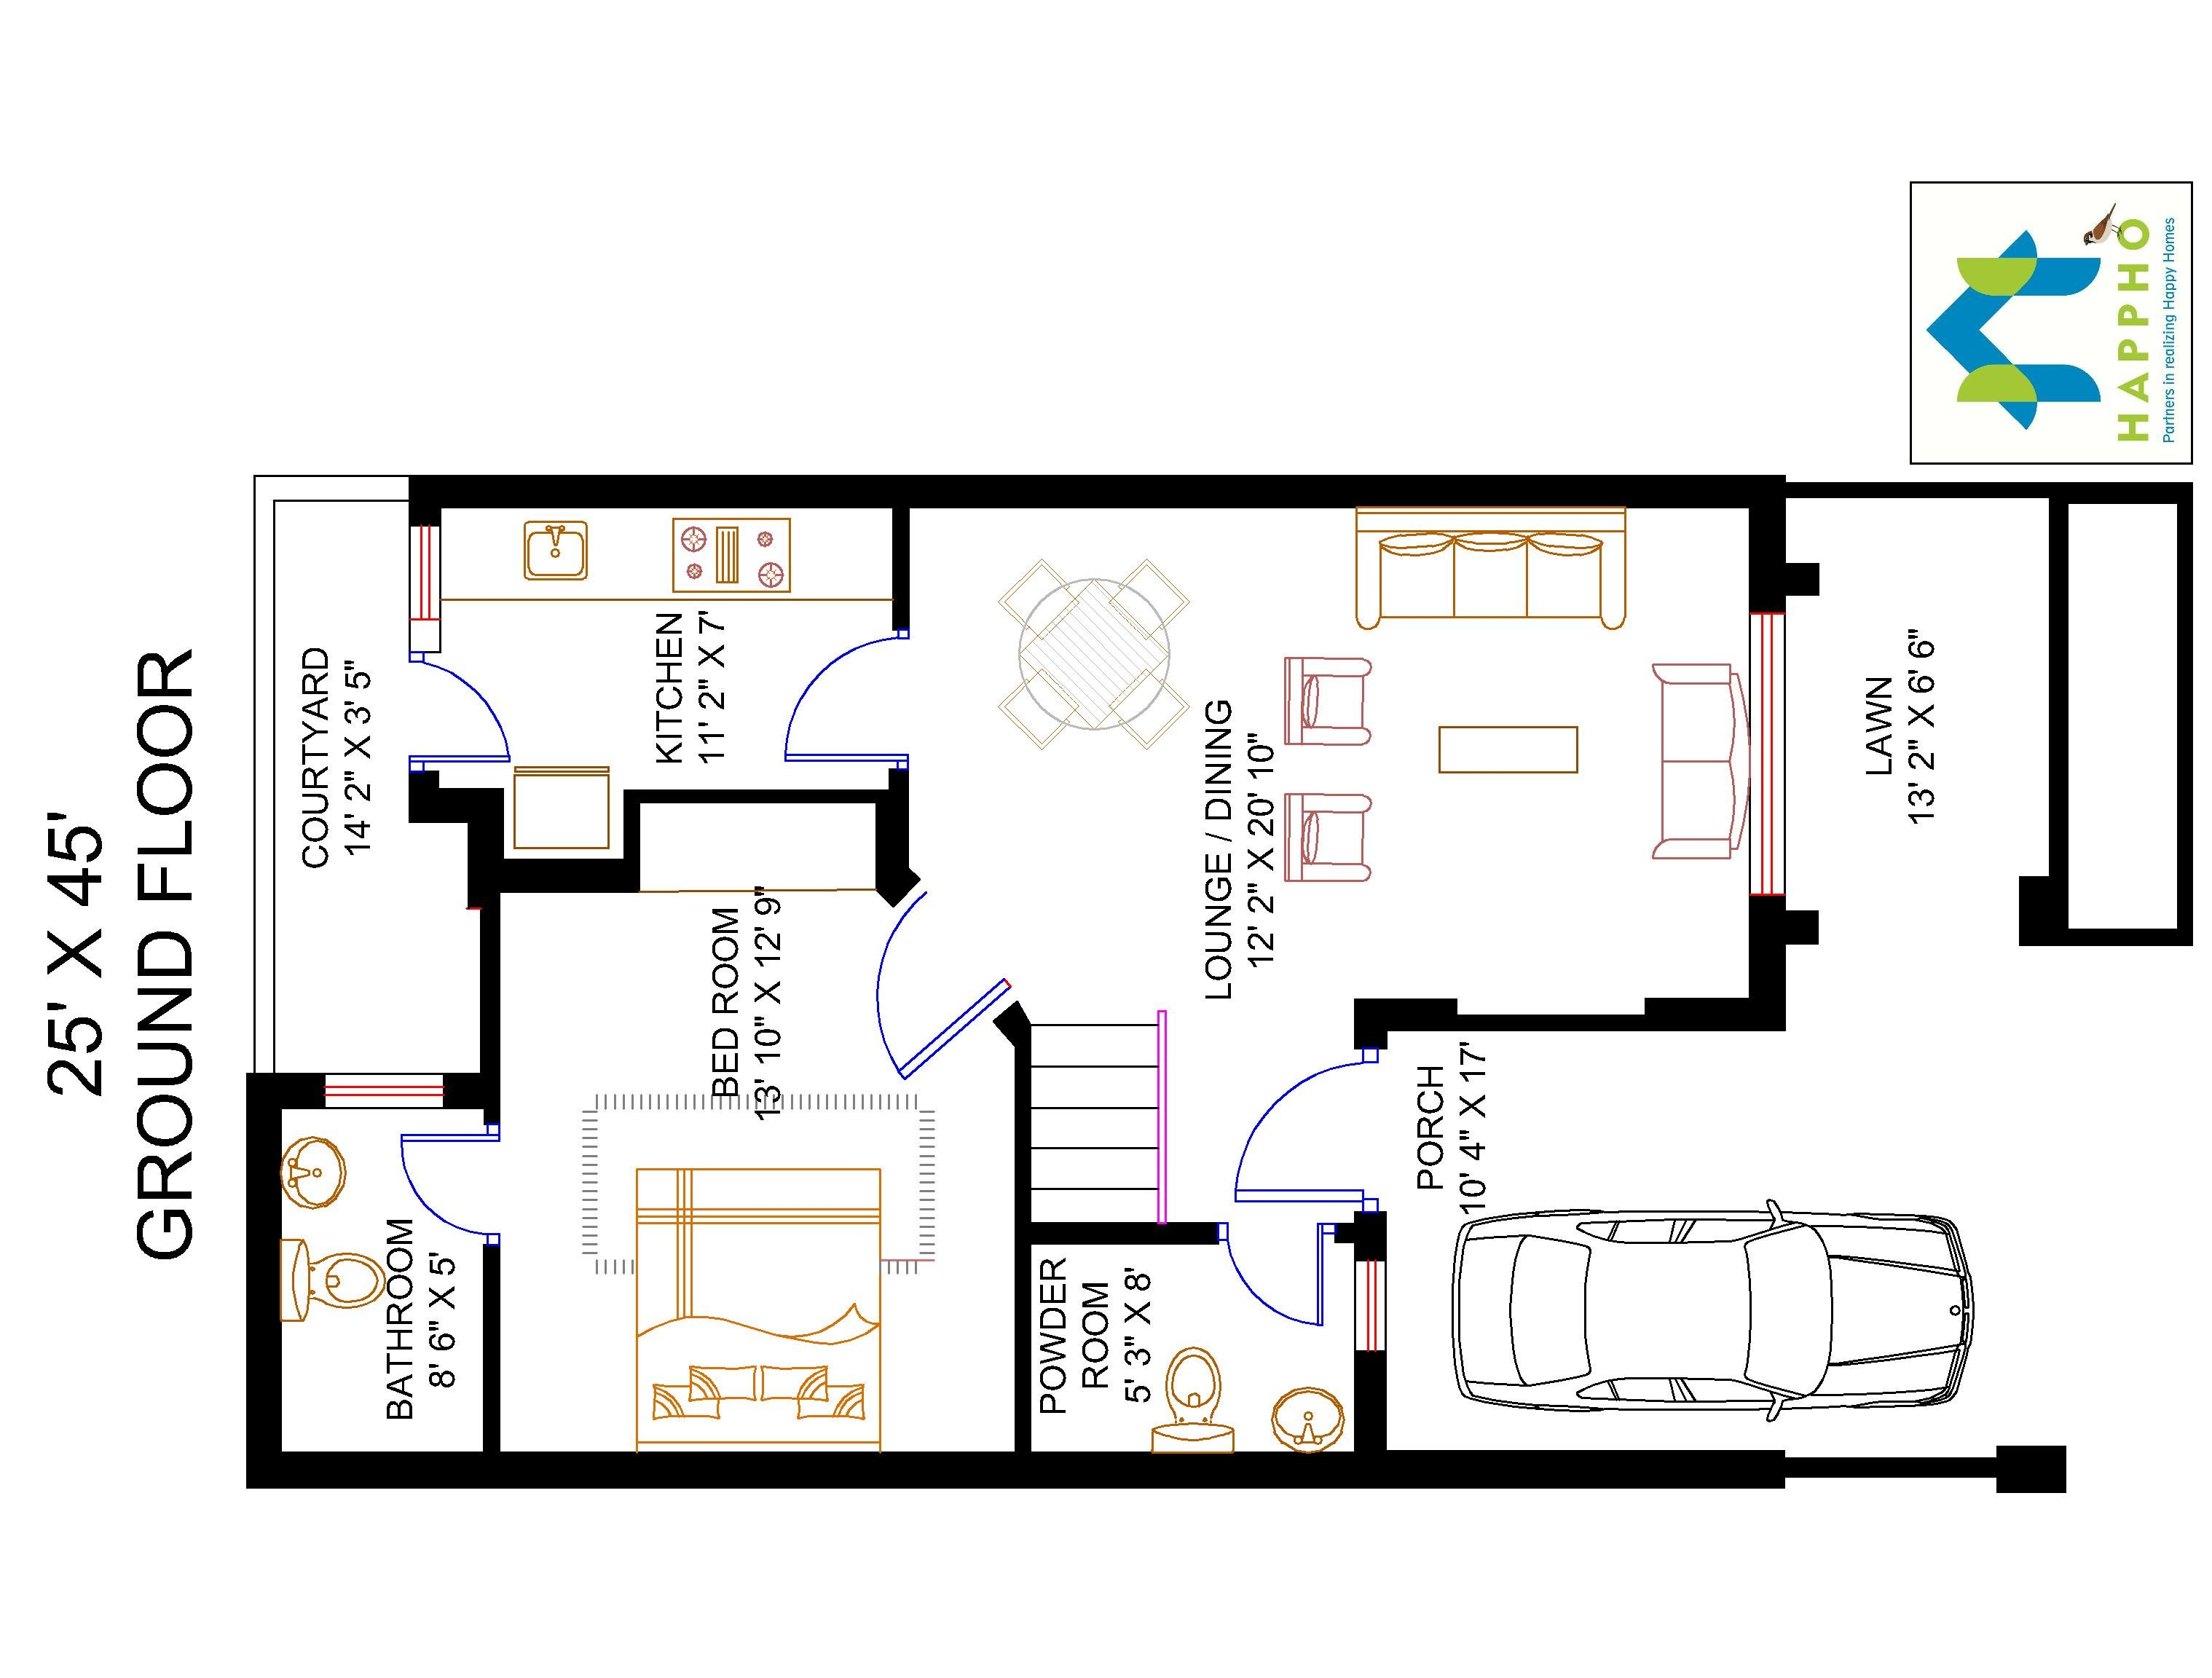 Bath Duplex Floor Plans Floor Plan For 25 X 45 Feet Plot 3 Bhk 1125 Square Feet